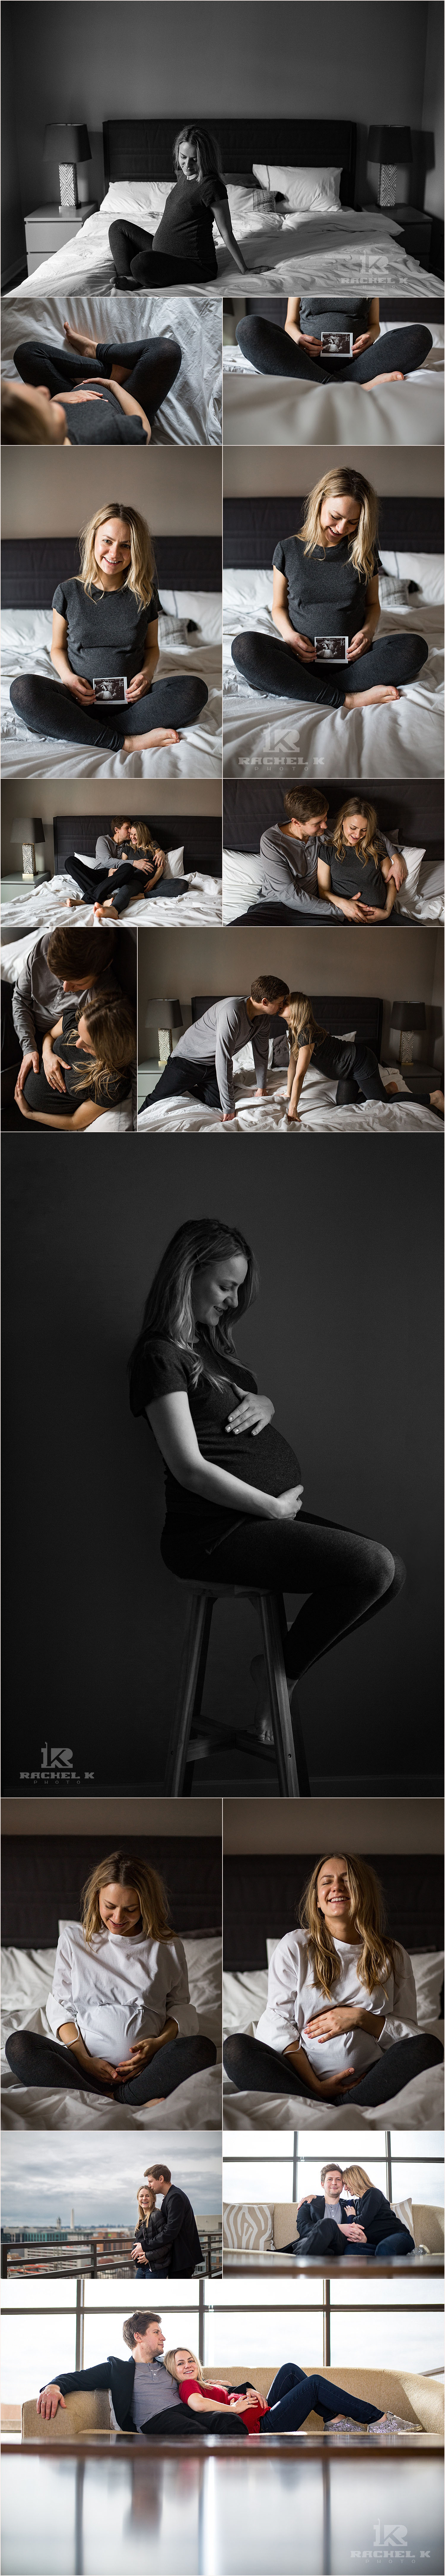 DC Indoor lifestyle maternity session by Rachel K Photo